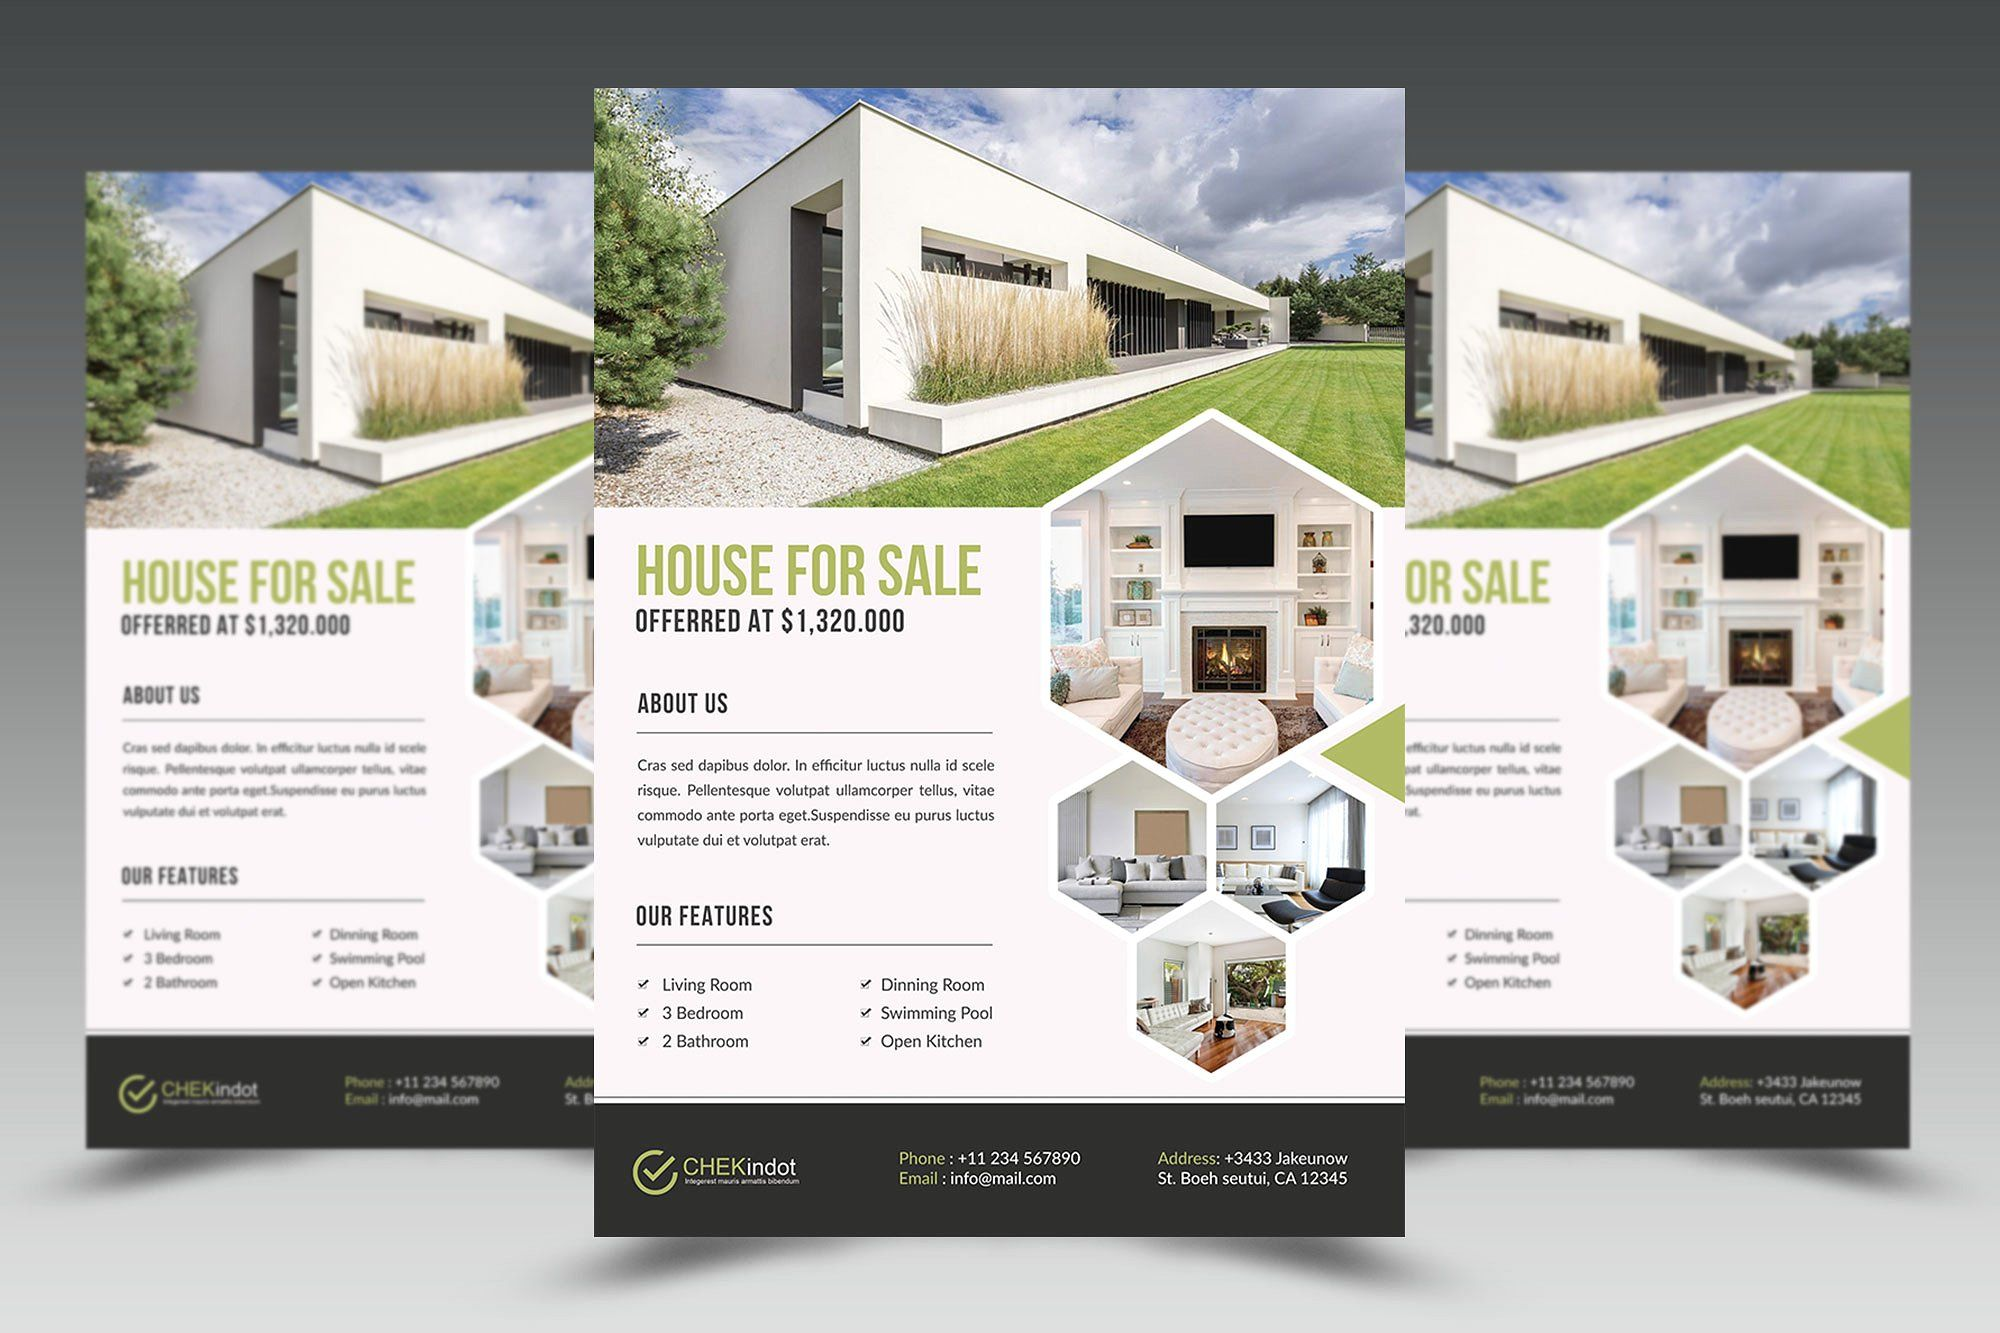 Real Estate Flyer By Graphicidenic On Creativemarket Real